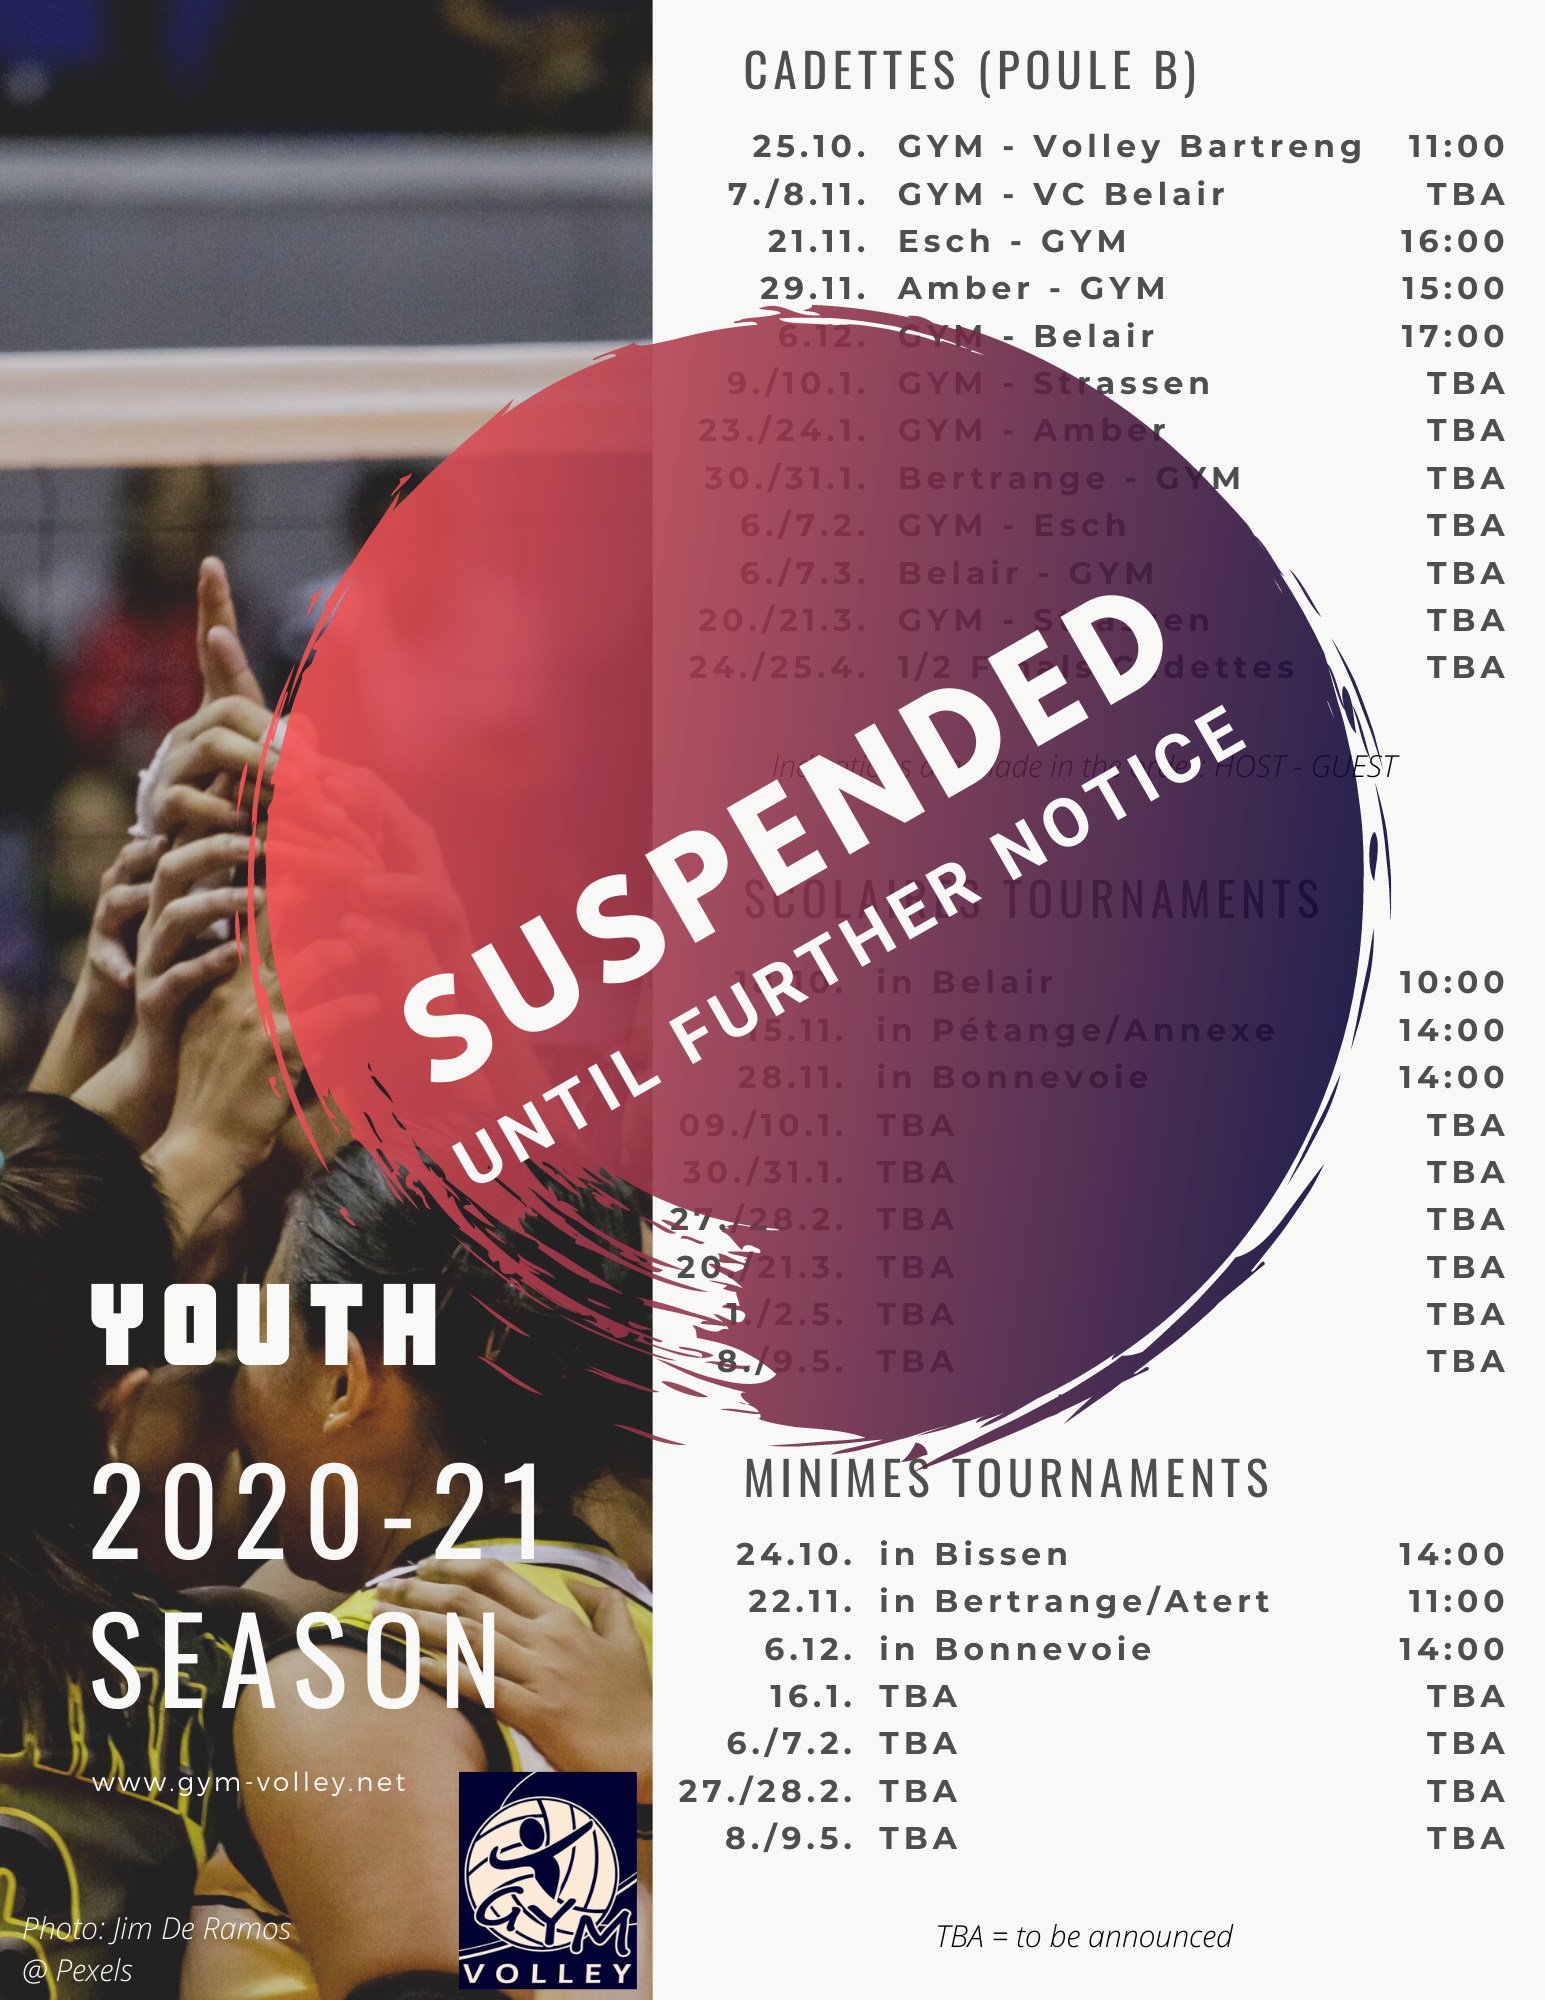 2020 2021 Season schedule YOUTH